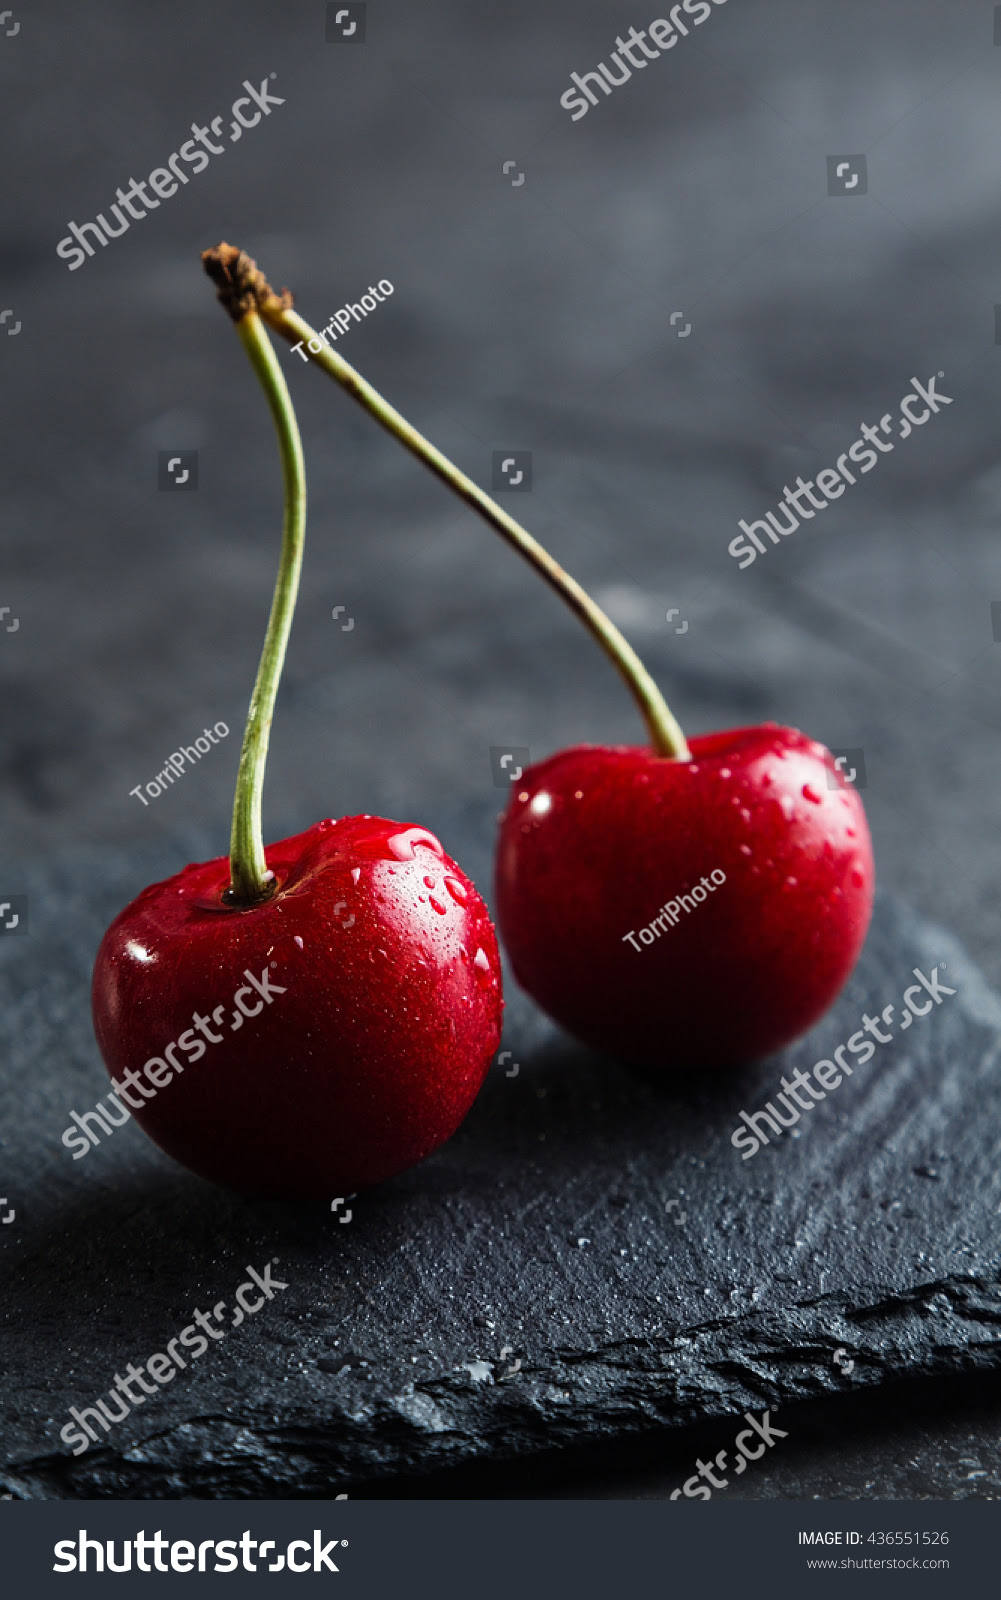 background, berry, black, cherry, closeup, concept, contrast, dark, delicious, dessert, diet, drop, focus, food, fresh, freshness, fruit, gourmet, group, healthy, juice, juicy, kitchen, lot, macro, many, meal, natural, nature, nutrition, organic, raw, red, ripe, shallow, stem, summer, sweet, two, useful, vegetarian, vitamin, water, wet